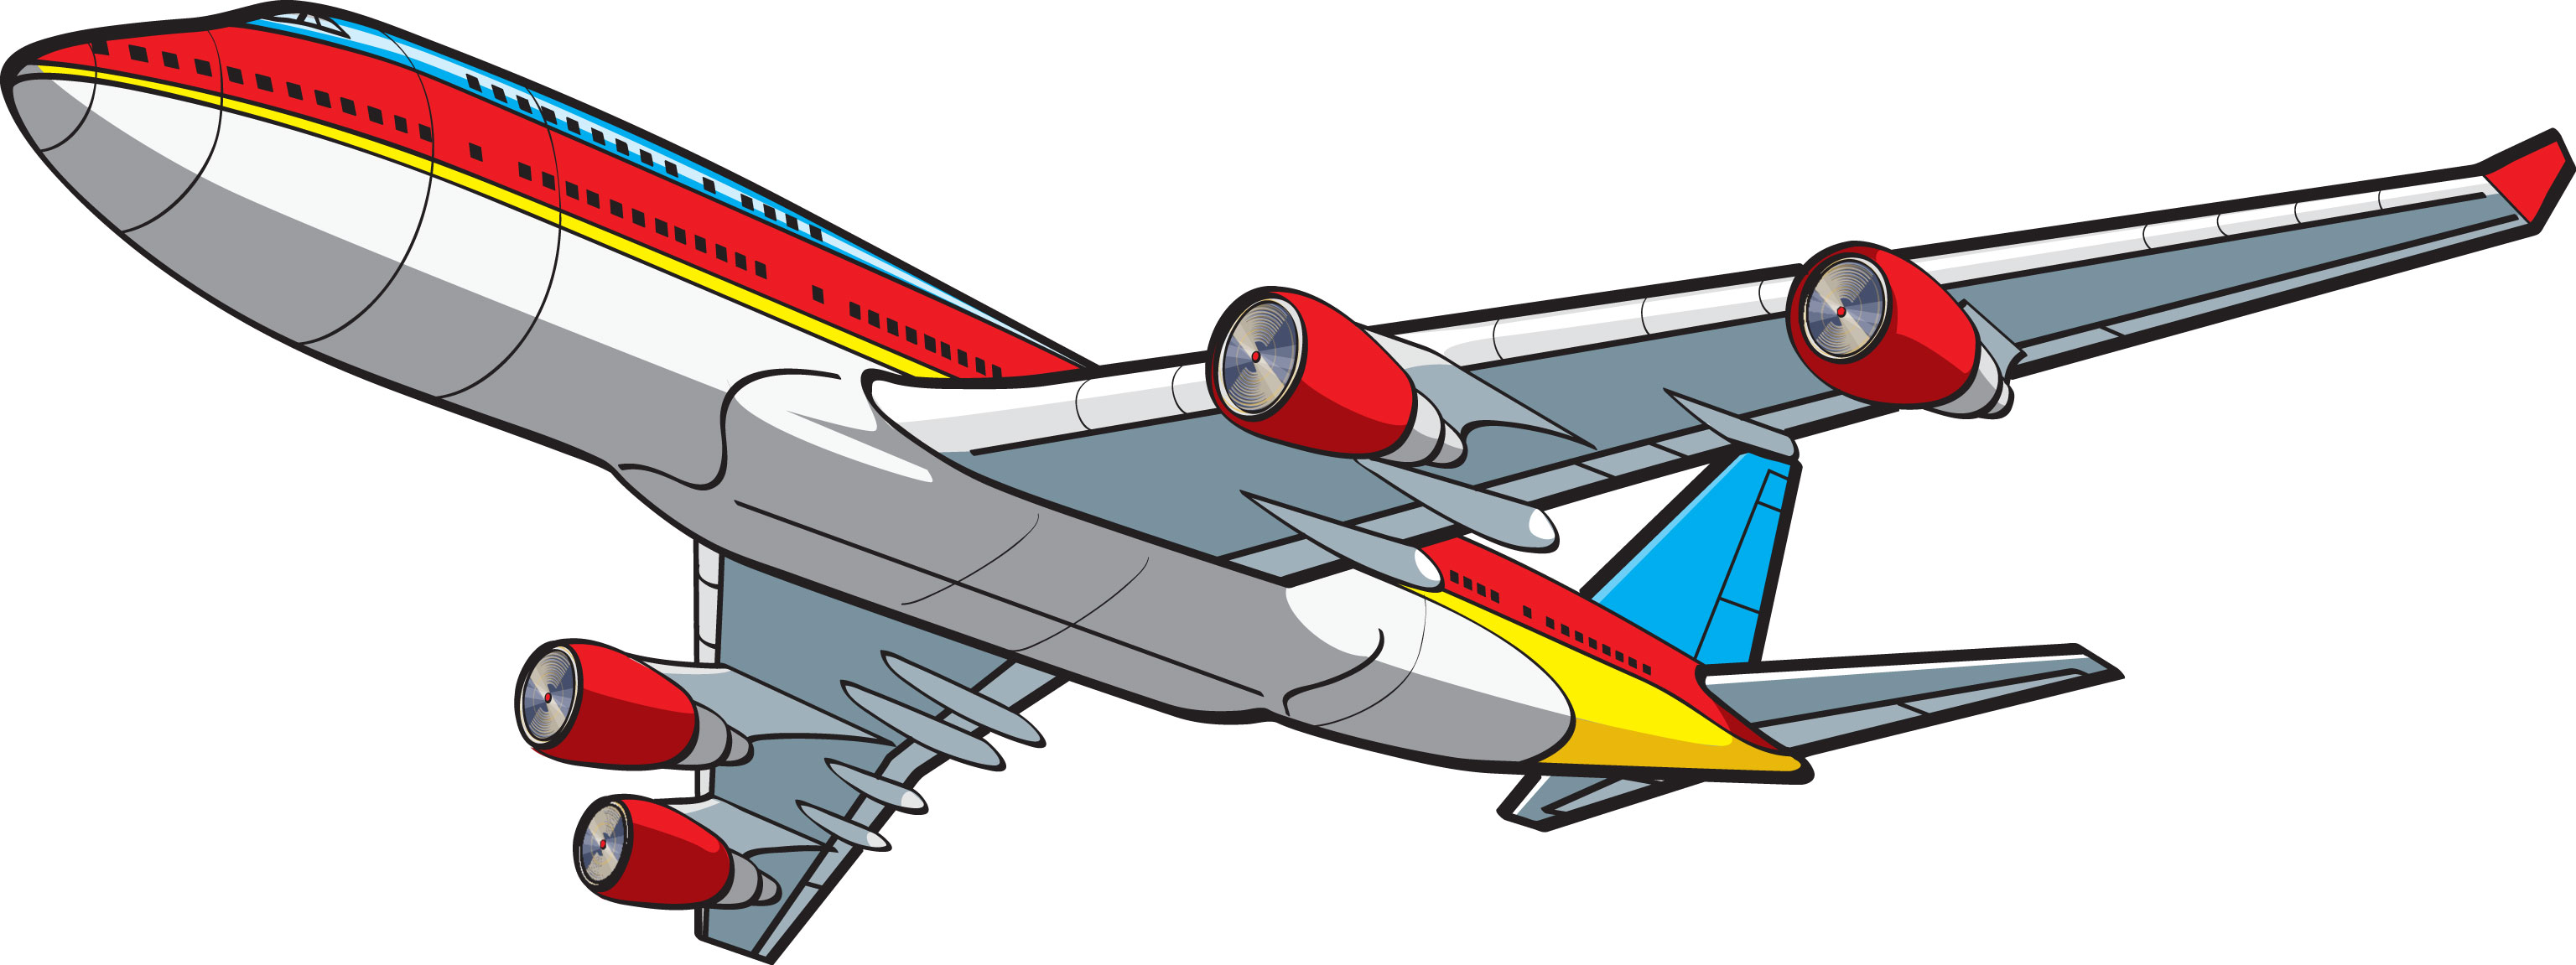 cartoon airplane clipart - photo #44